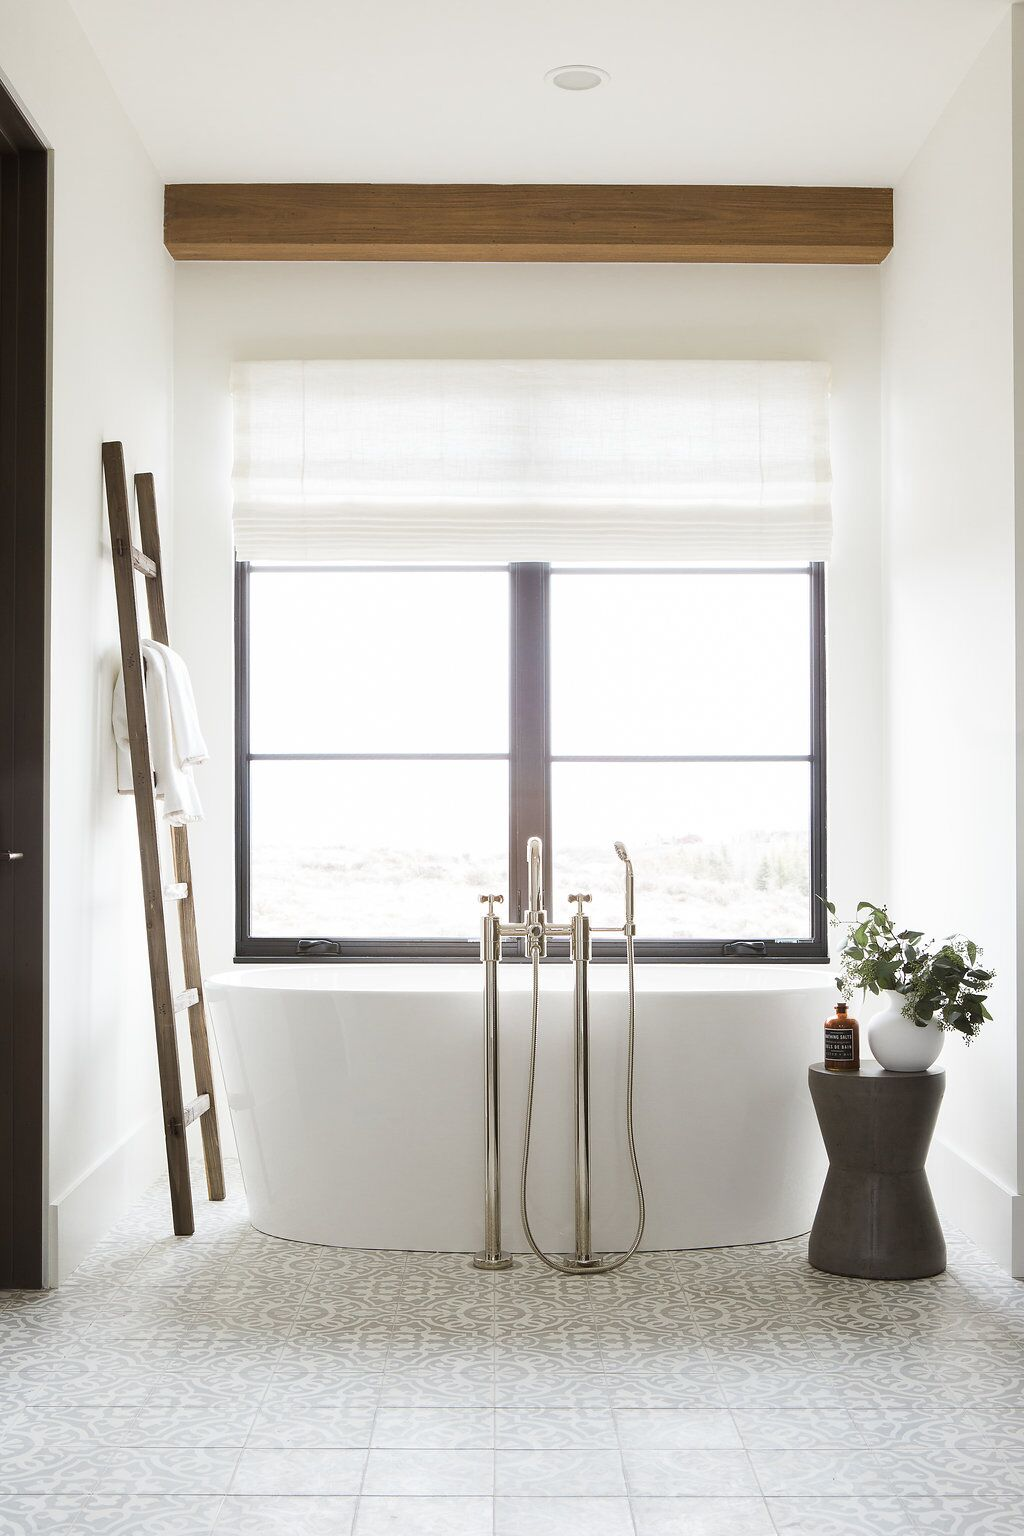 Large white, stand alone tub in front of window